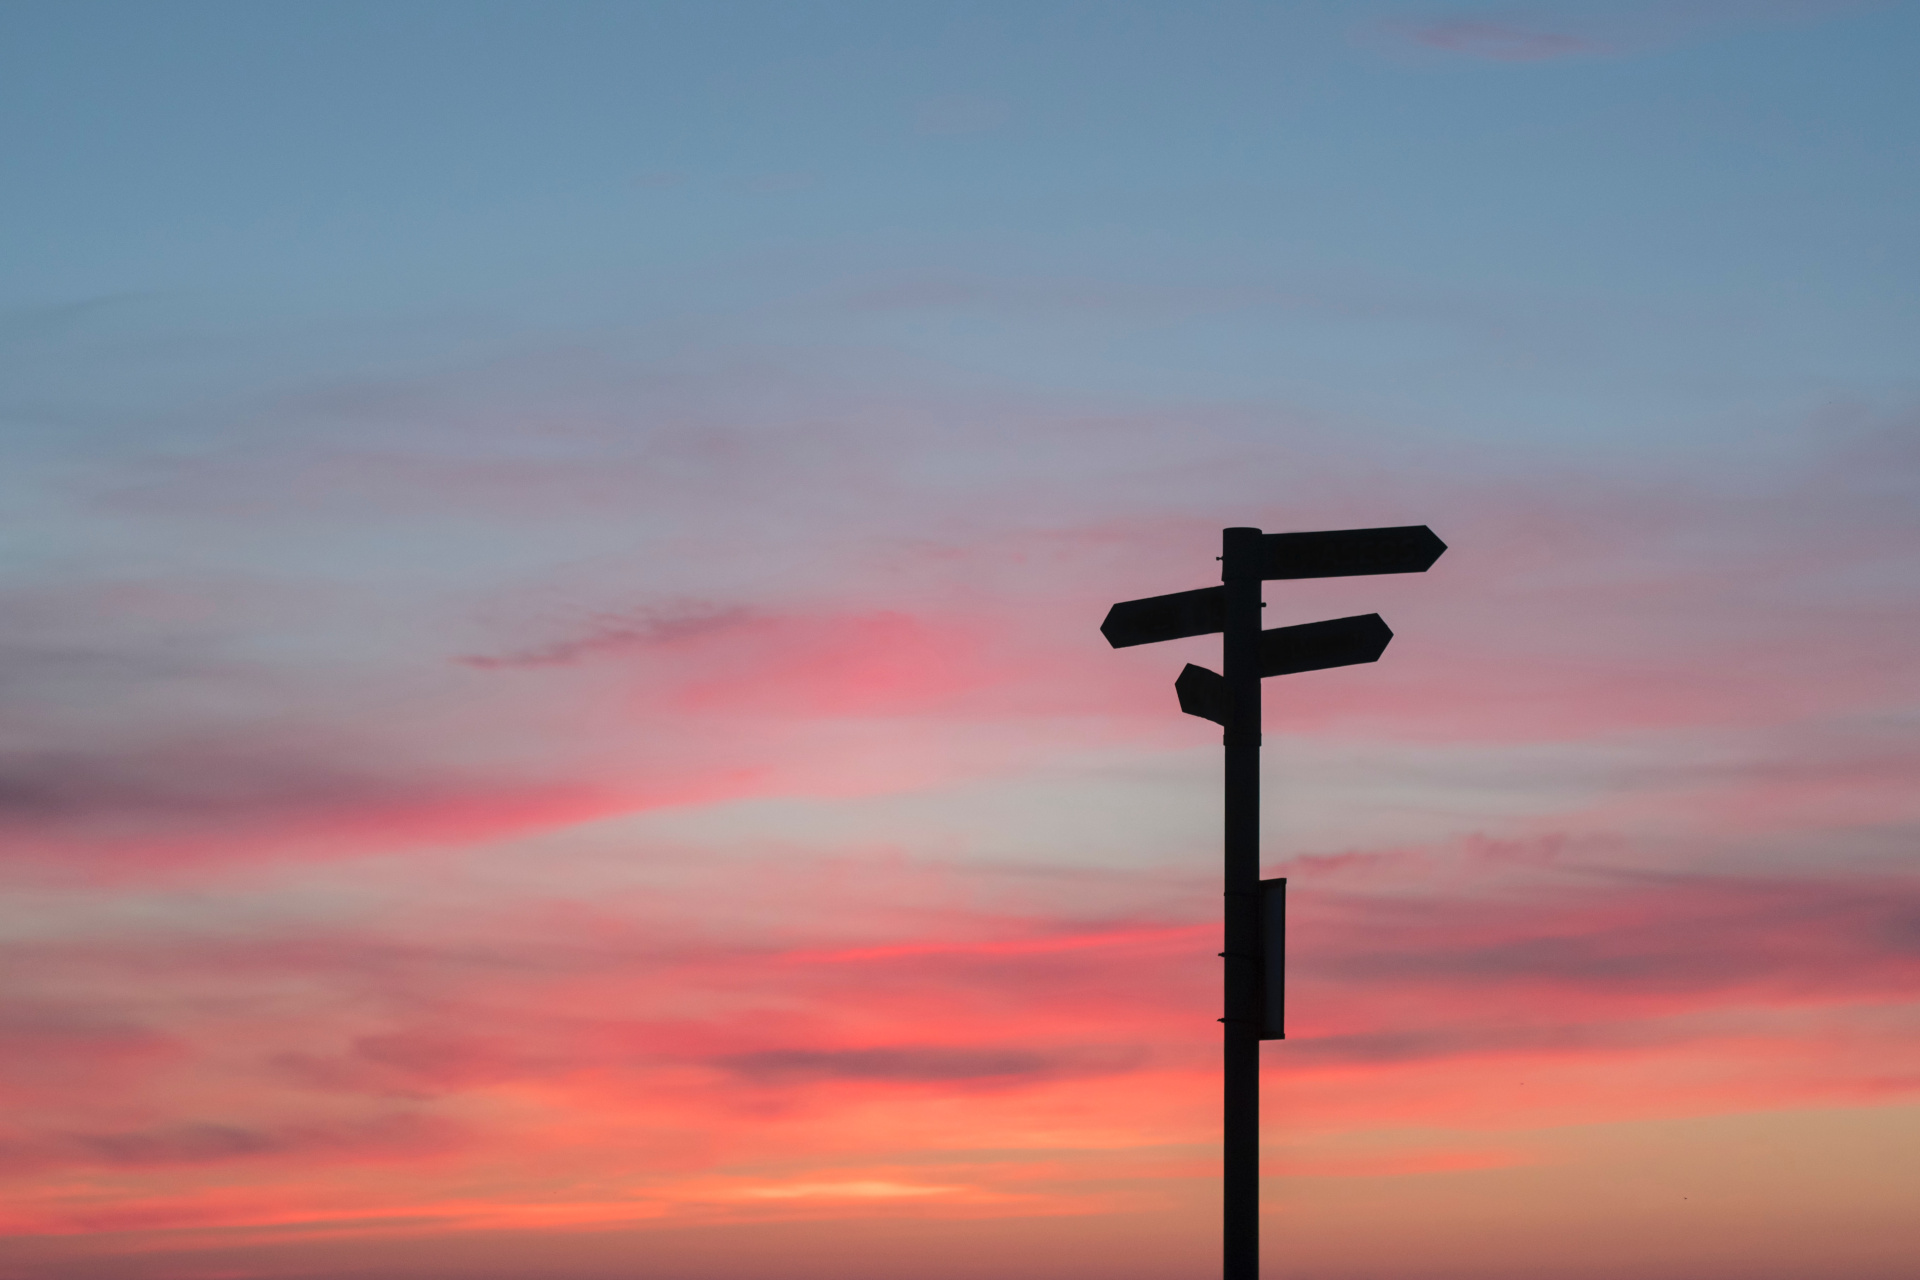 Silhouette Of Sign Post On Red Sky